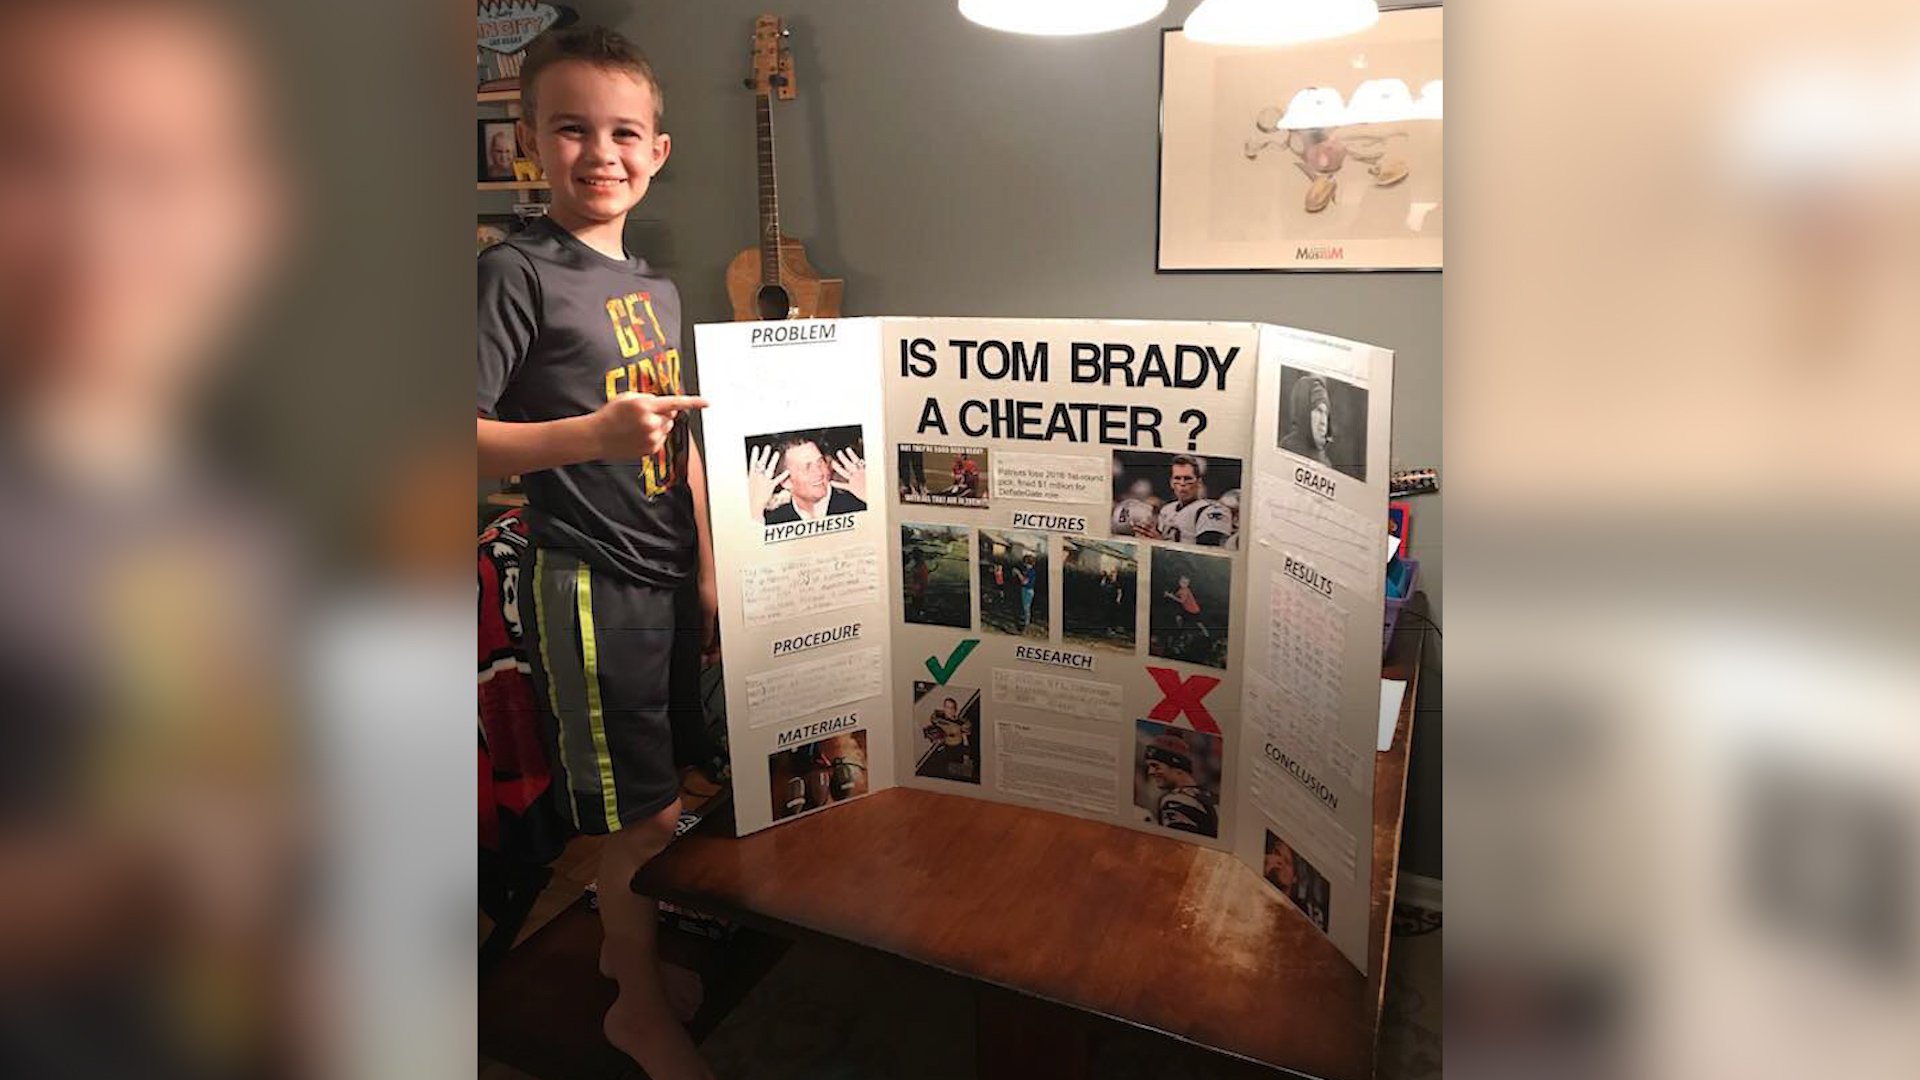 10-Year-Old's Winning Science Fair Project: 'Is Tom Brady a Cheater?'